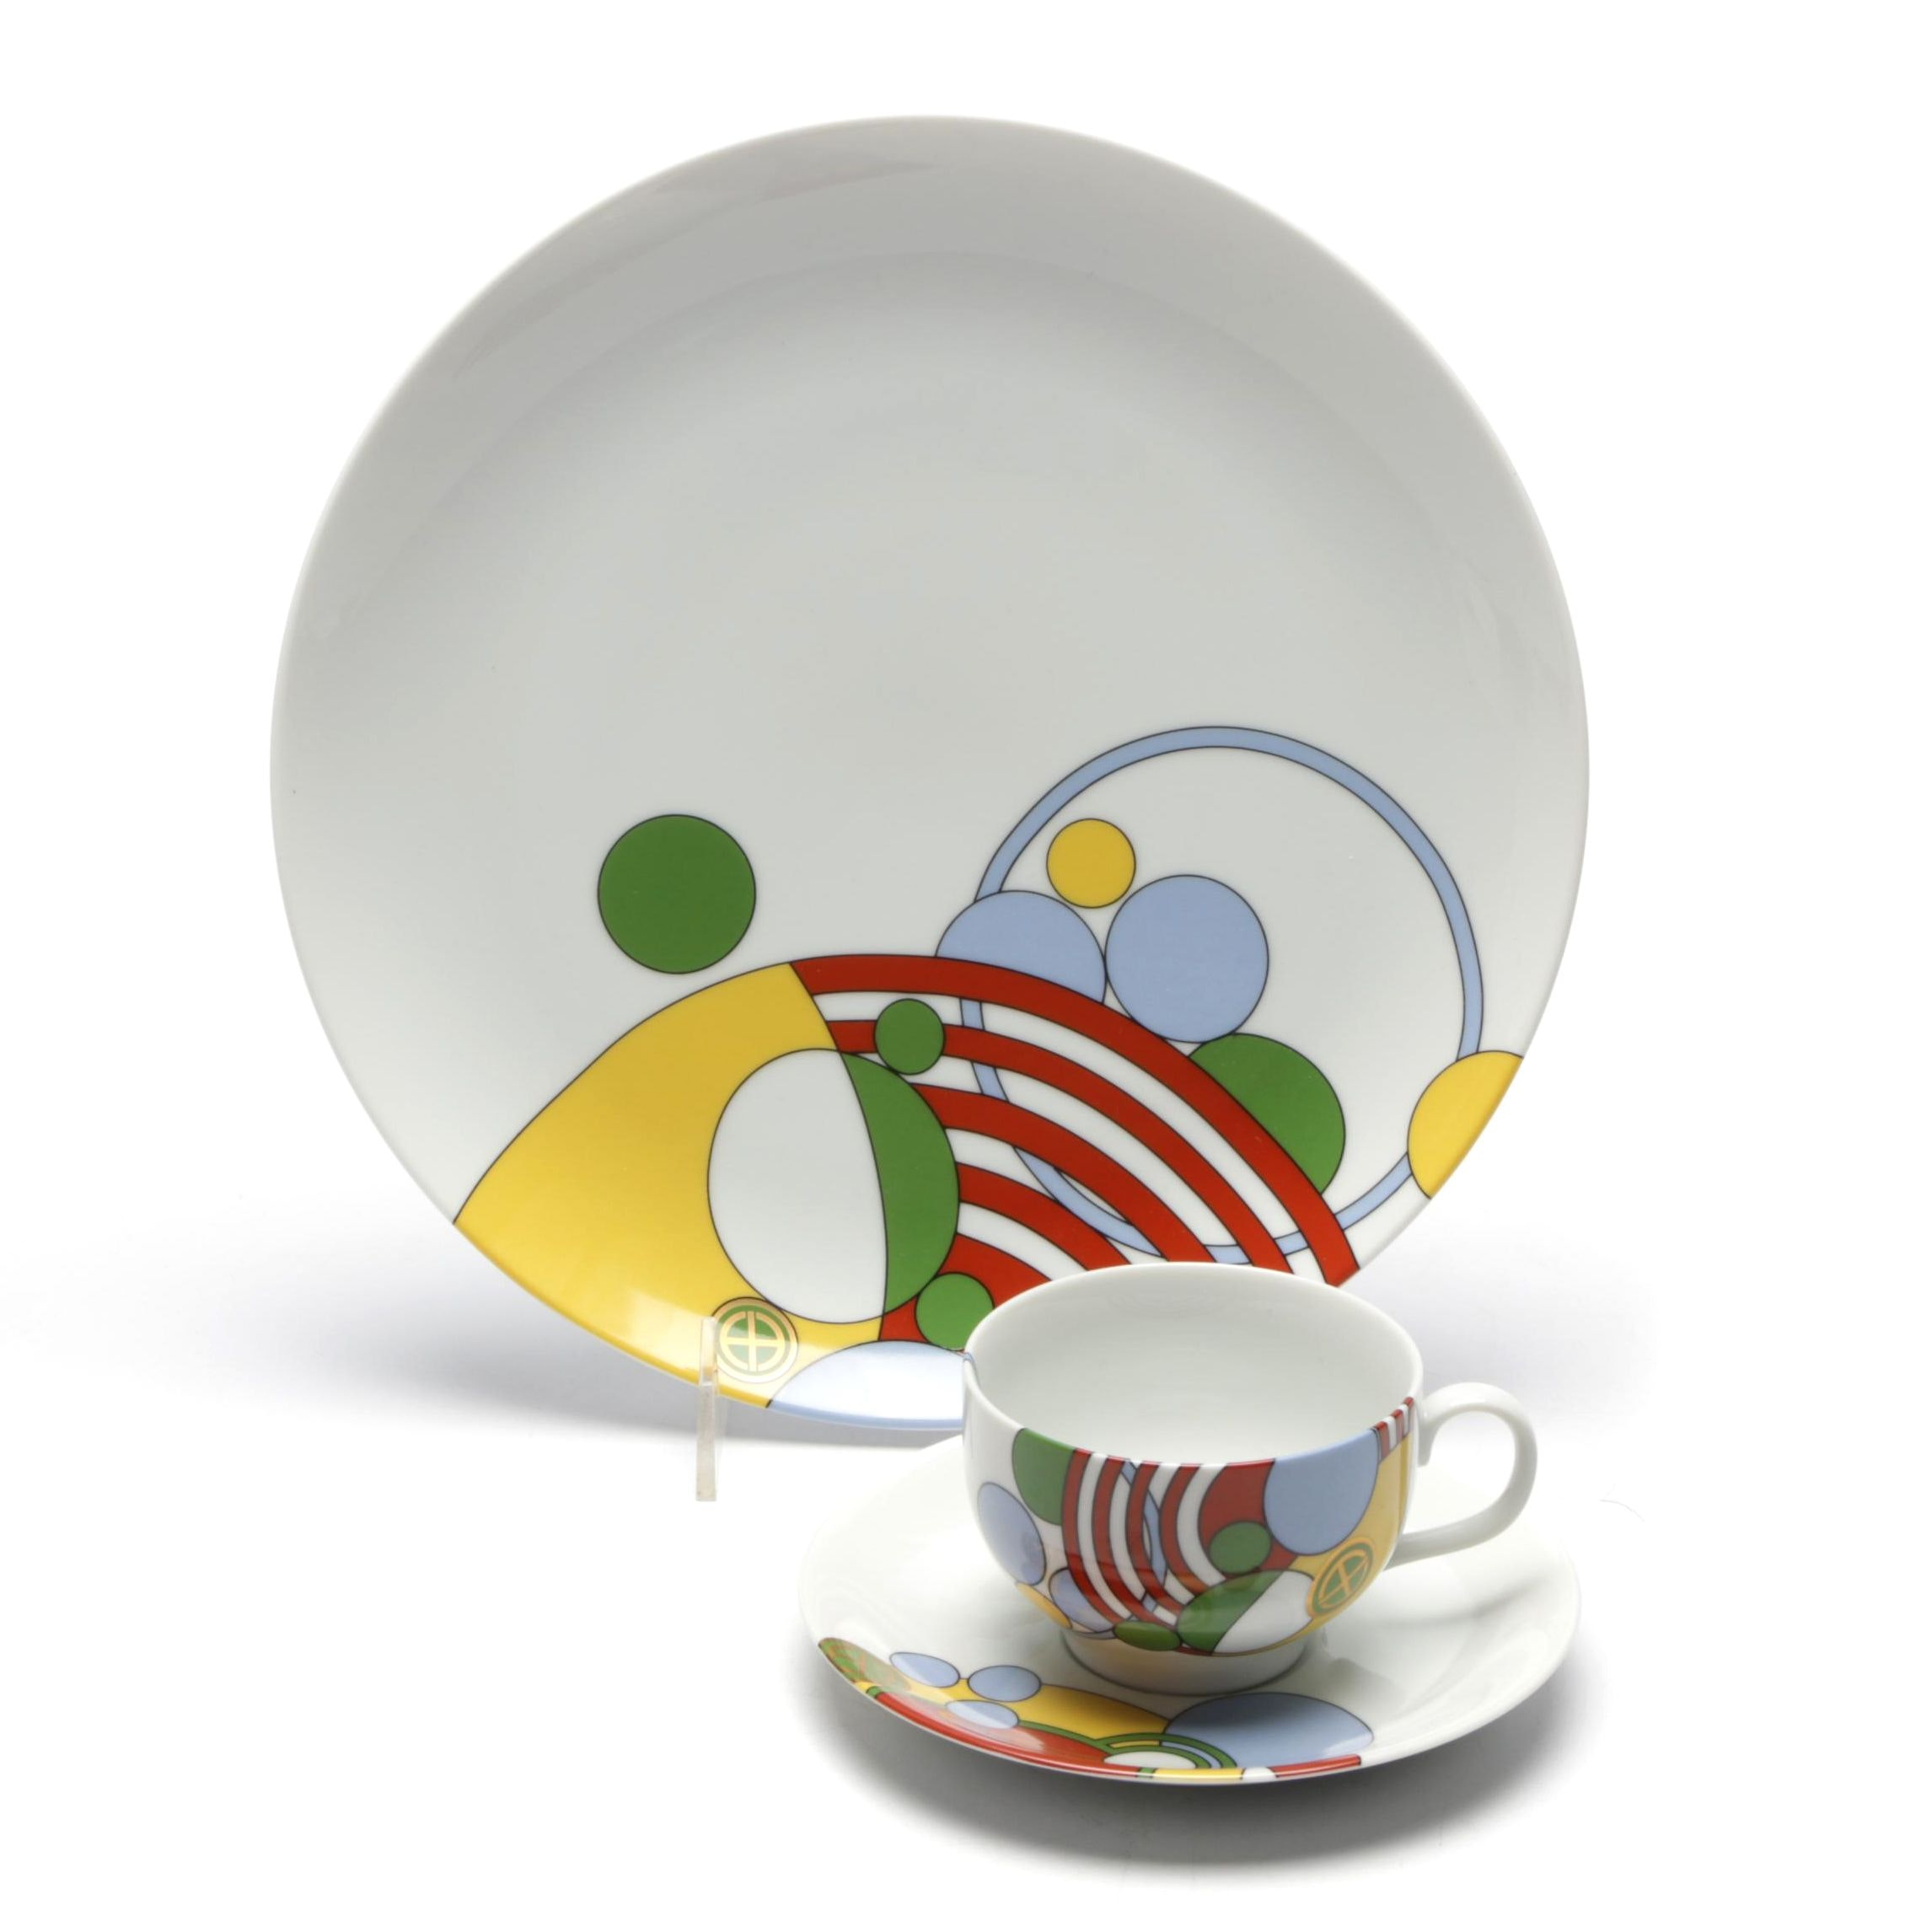 """Tiffany & Co. """"Cabaret"""" Pattern Dinner Plate with Cup and Saucer"""